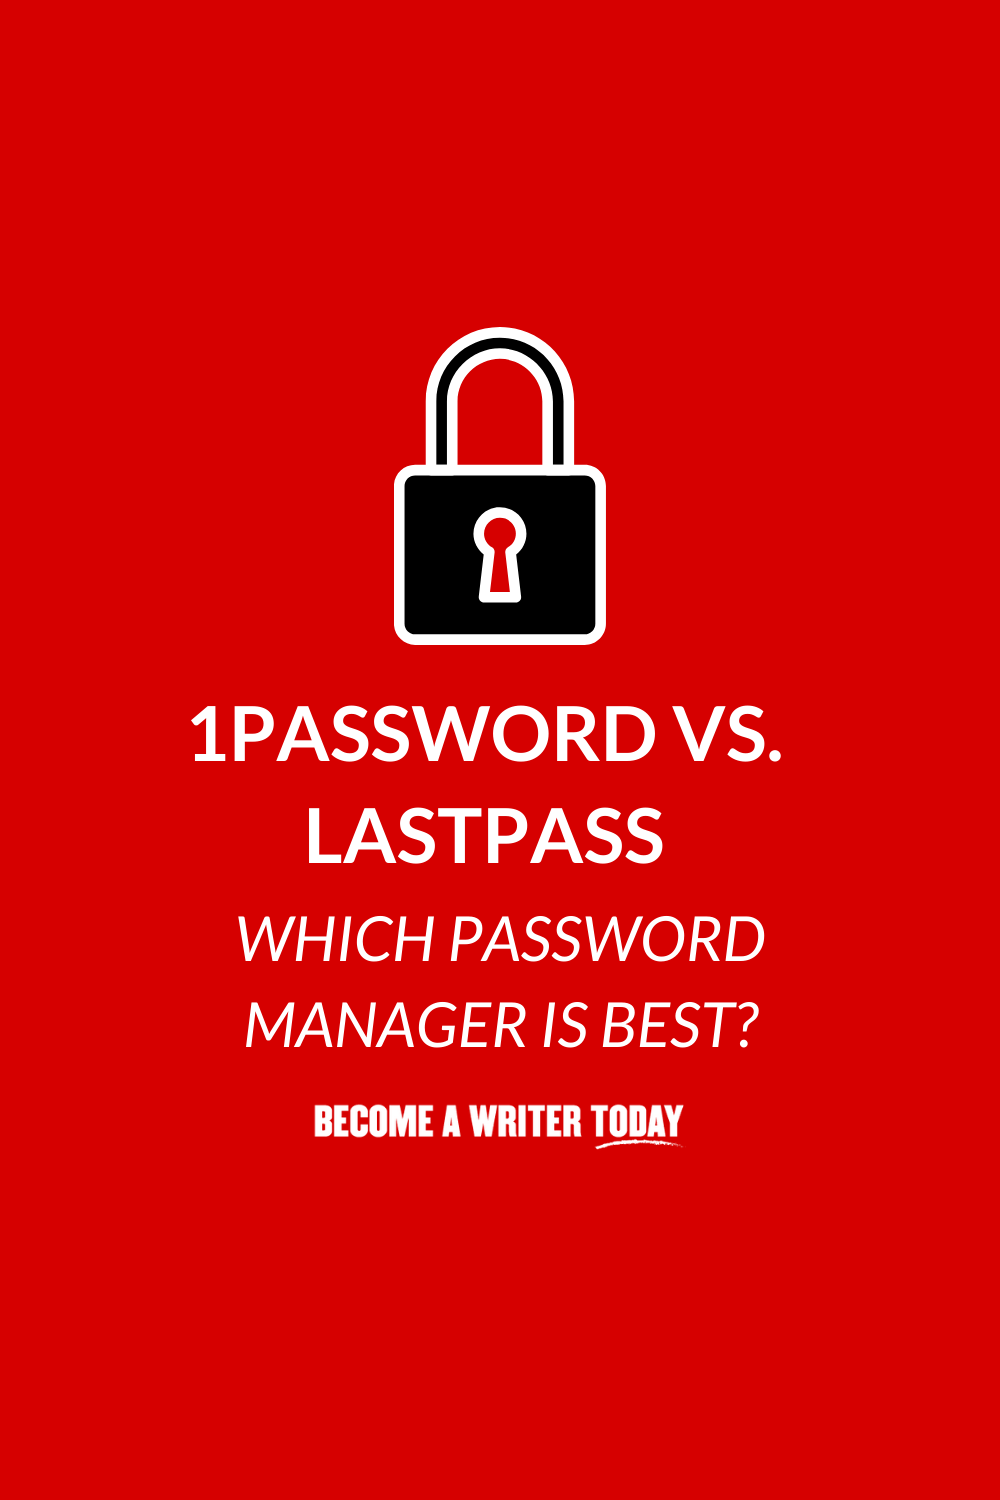 1Password vs. LastPass (2020): Which Password Manager Is Best?